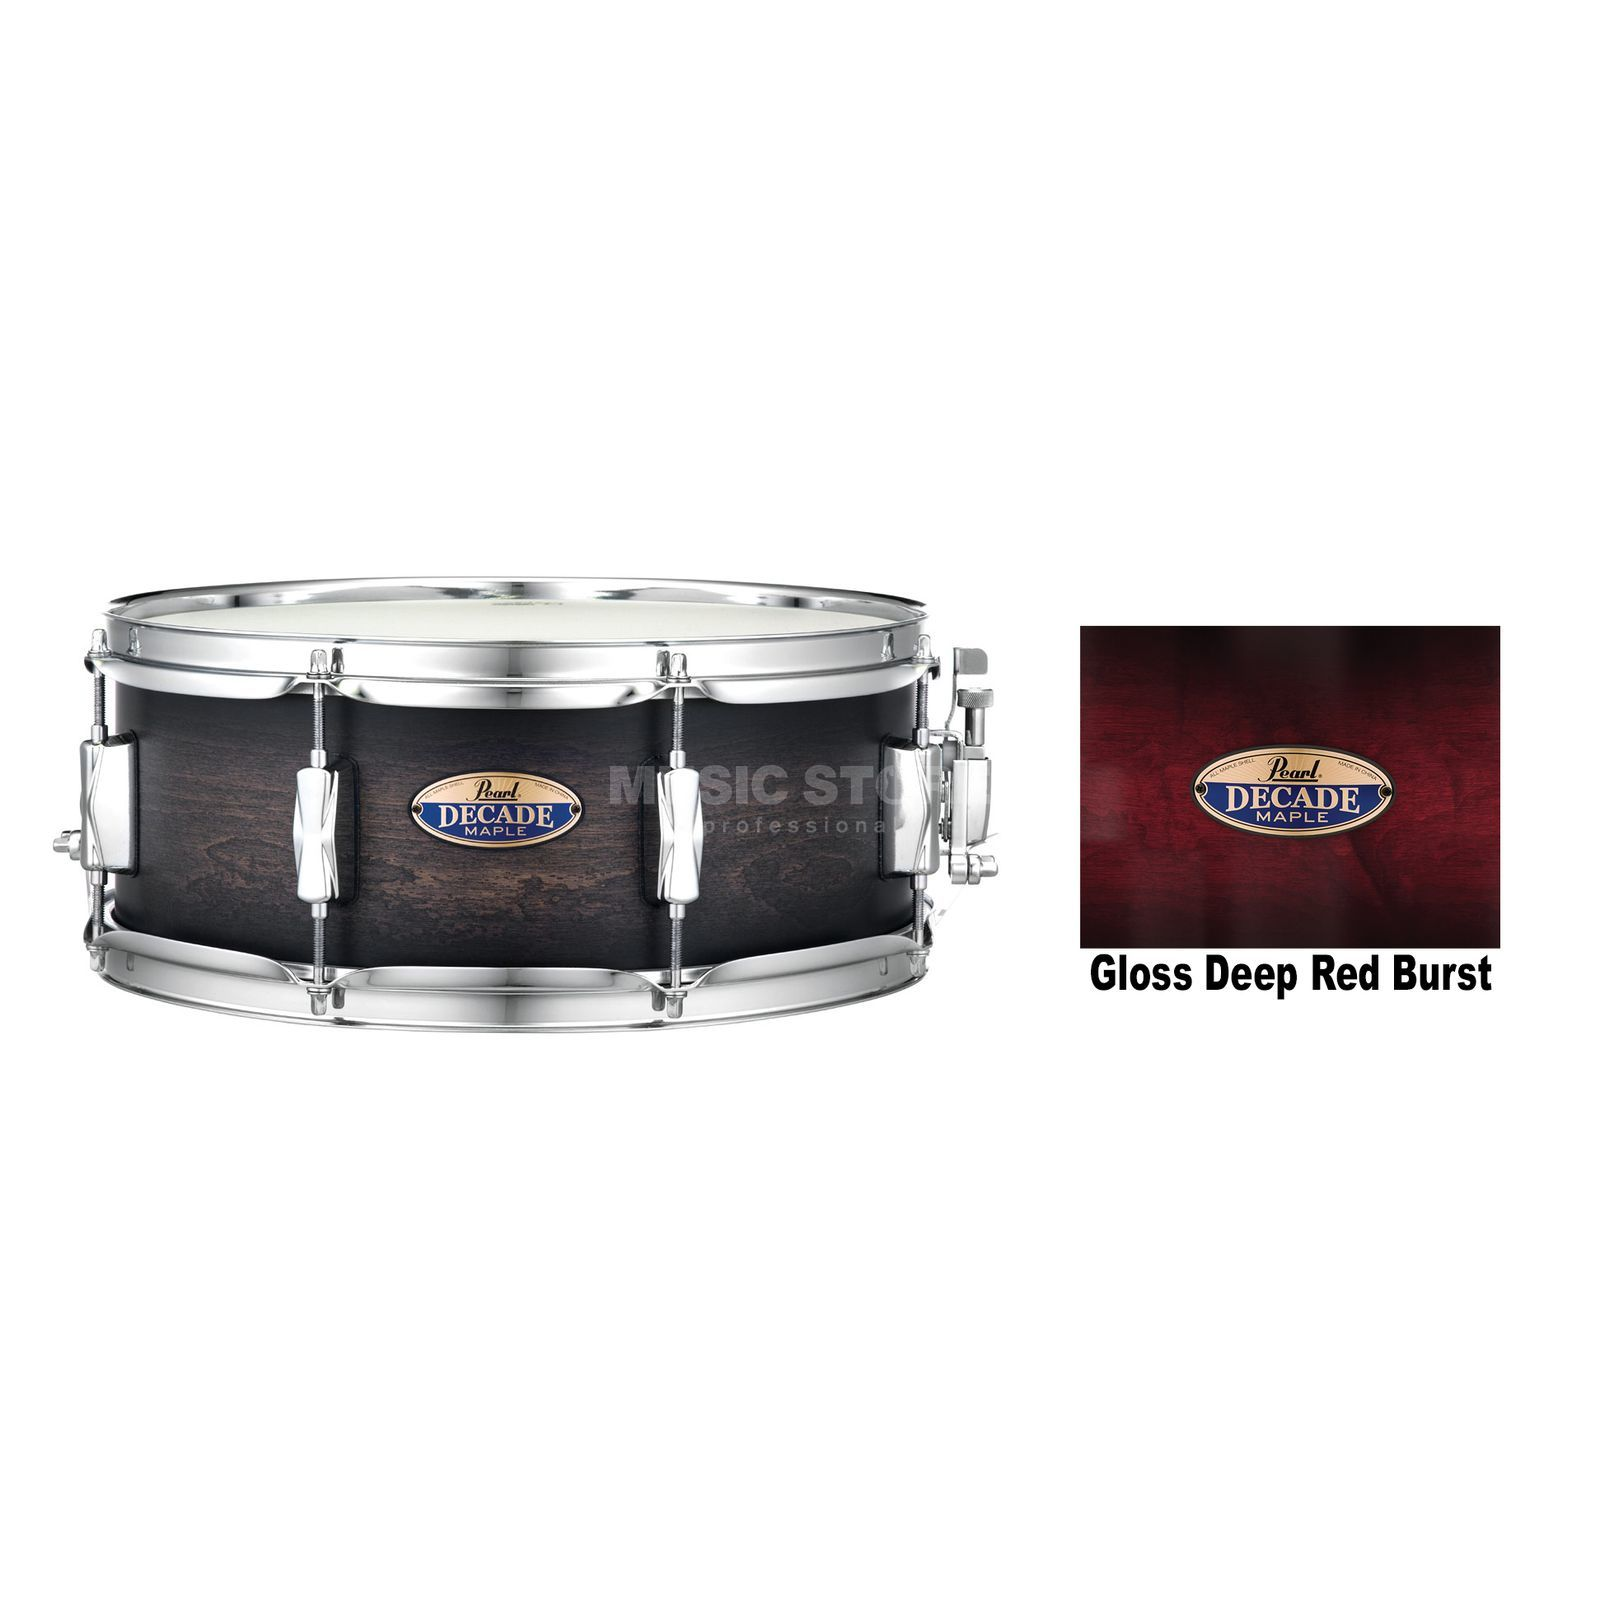 "Pearl Decade Maple Snare 14""x5,5"", Gloss Deep Red Burst #261 Product Image"